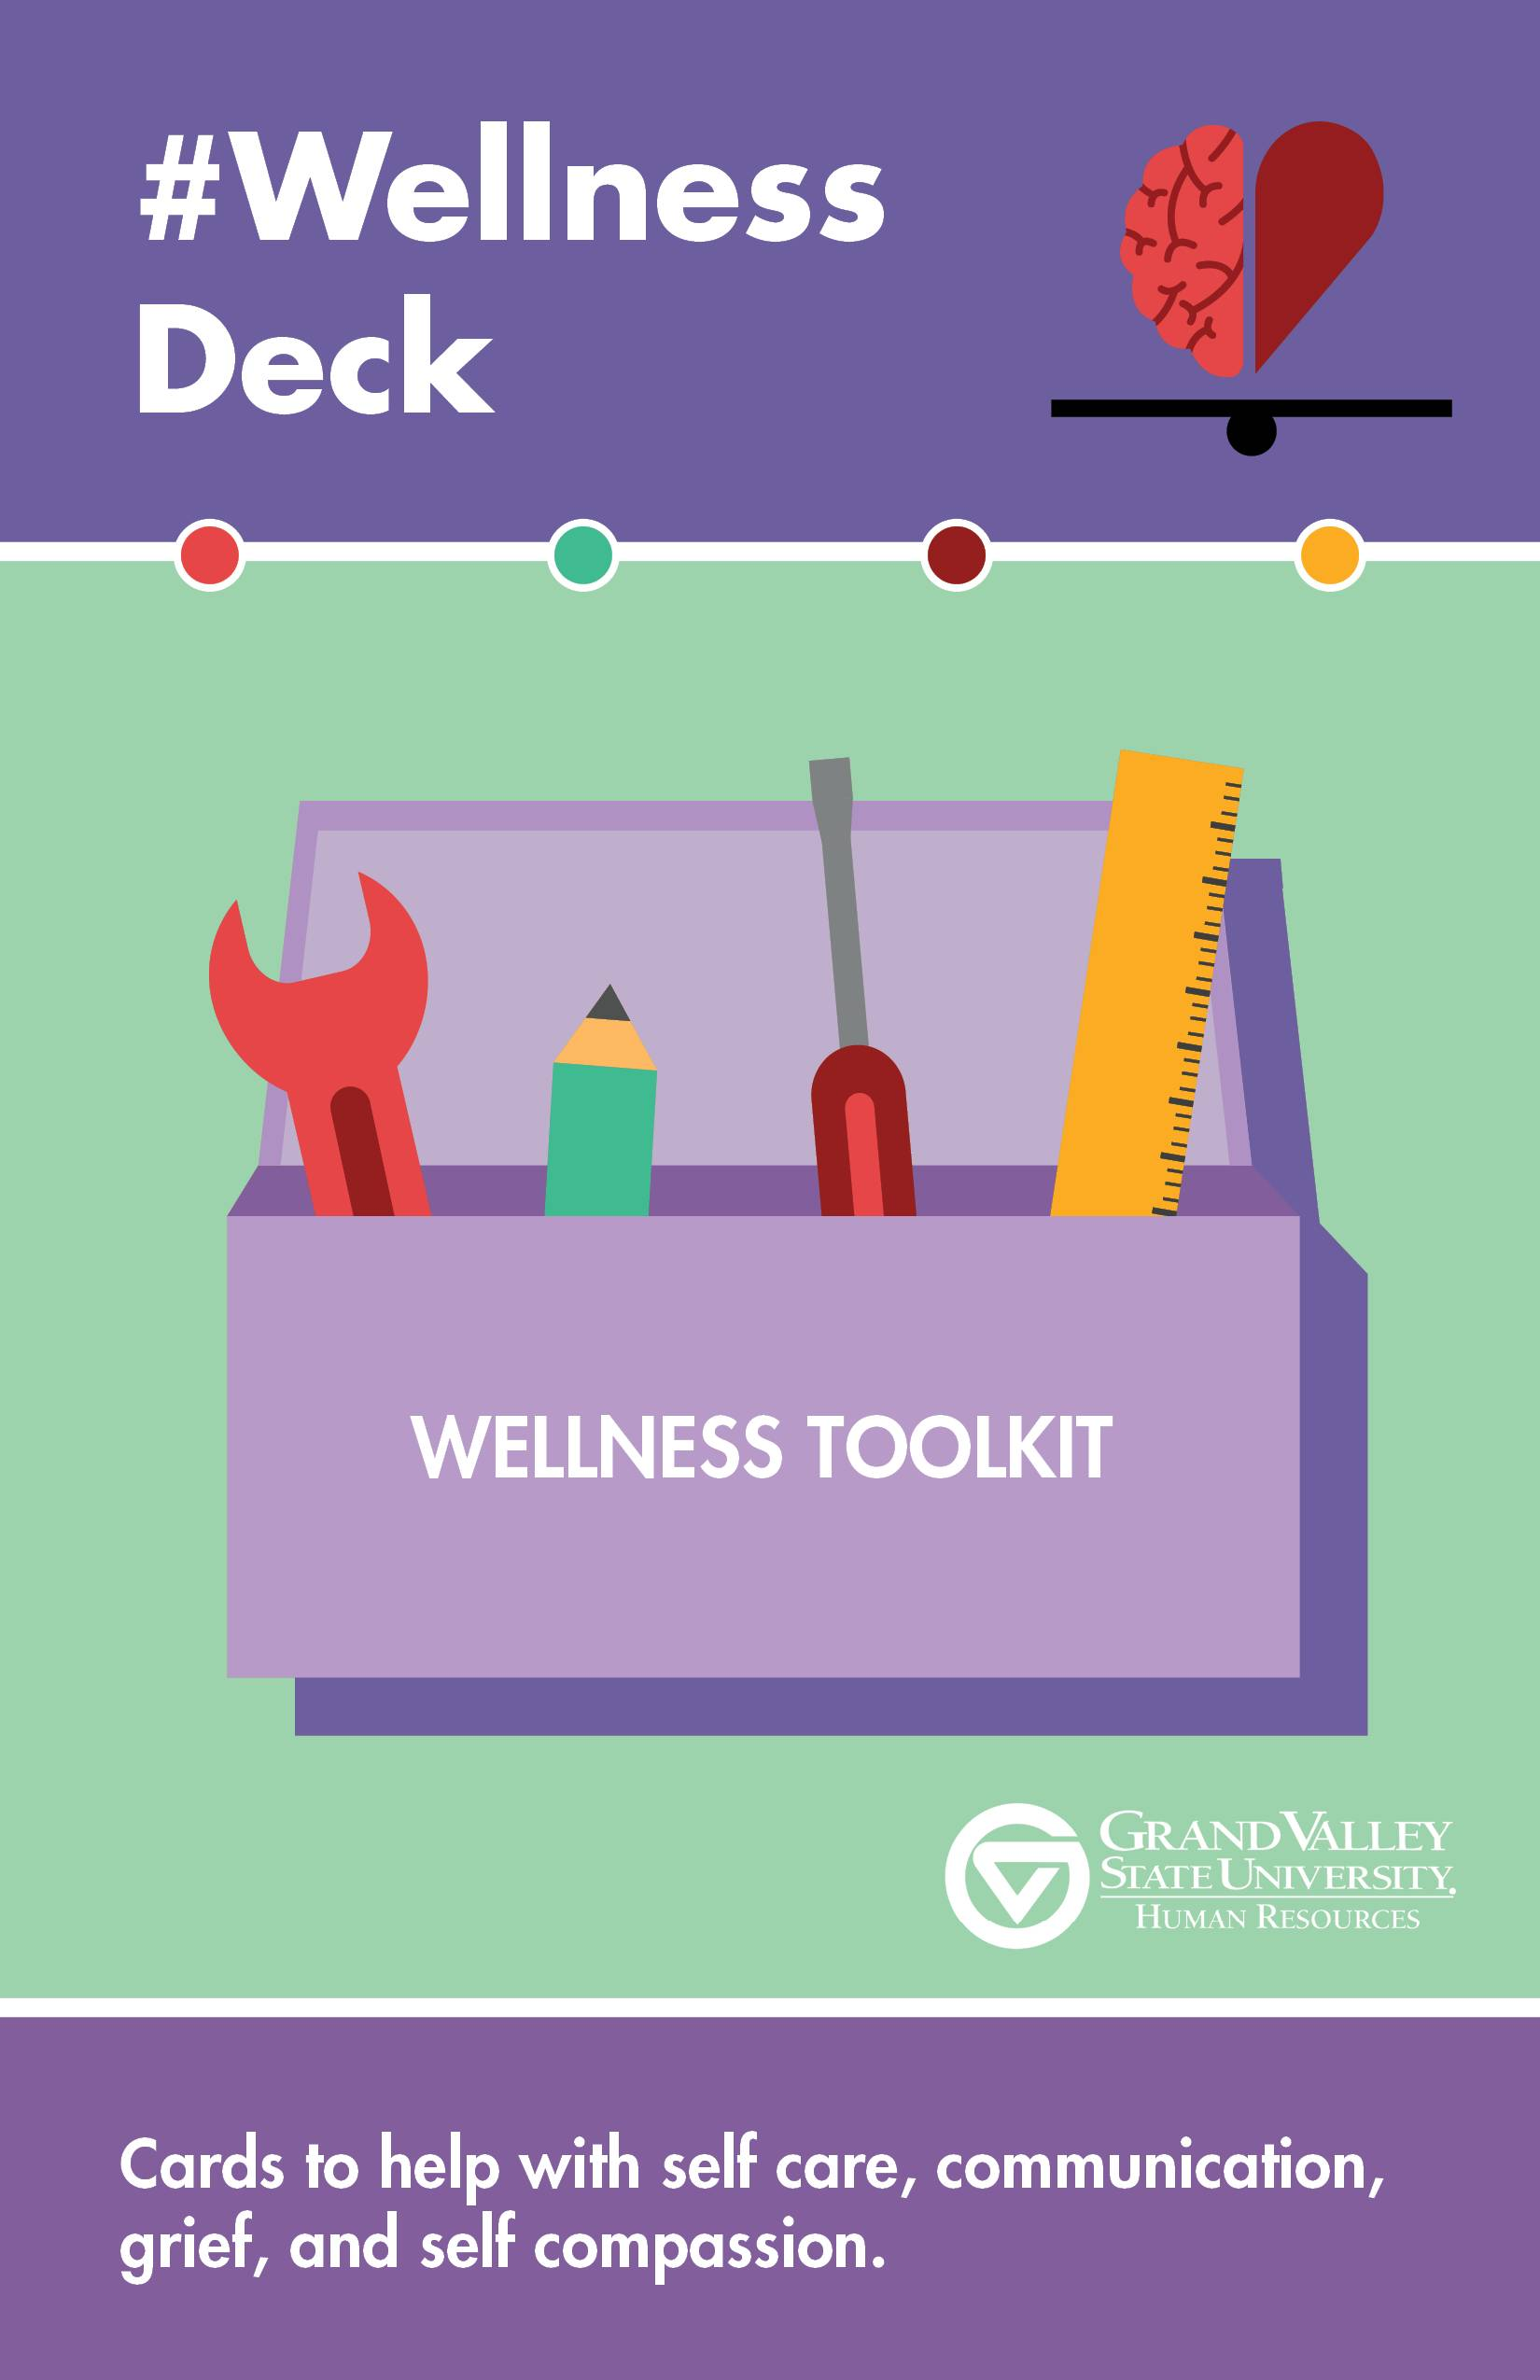 #Wellness toolkit deck